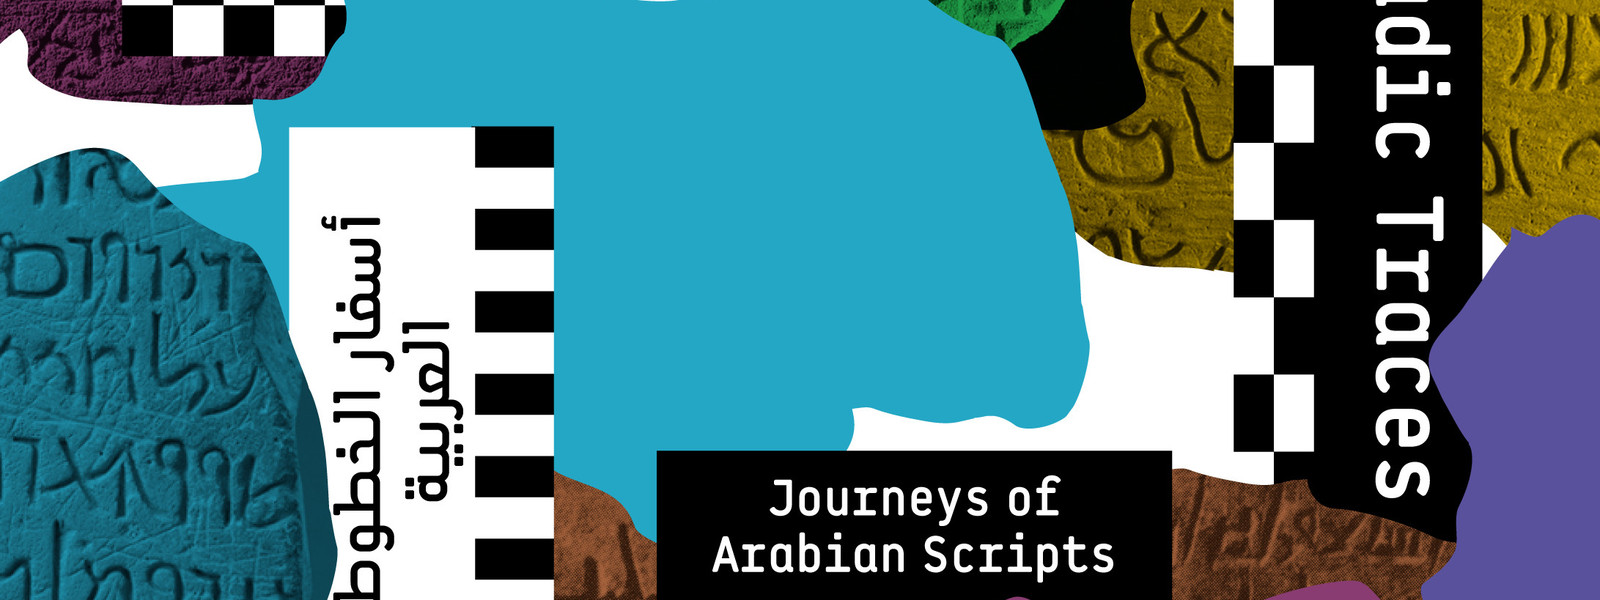 Nomadic Traces: Journeys of Arabian Scripts